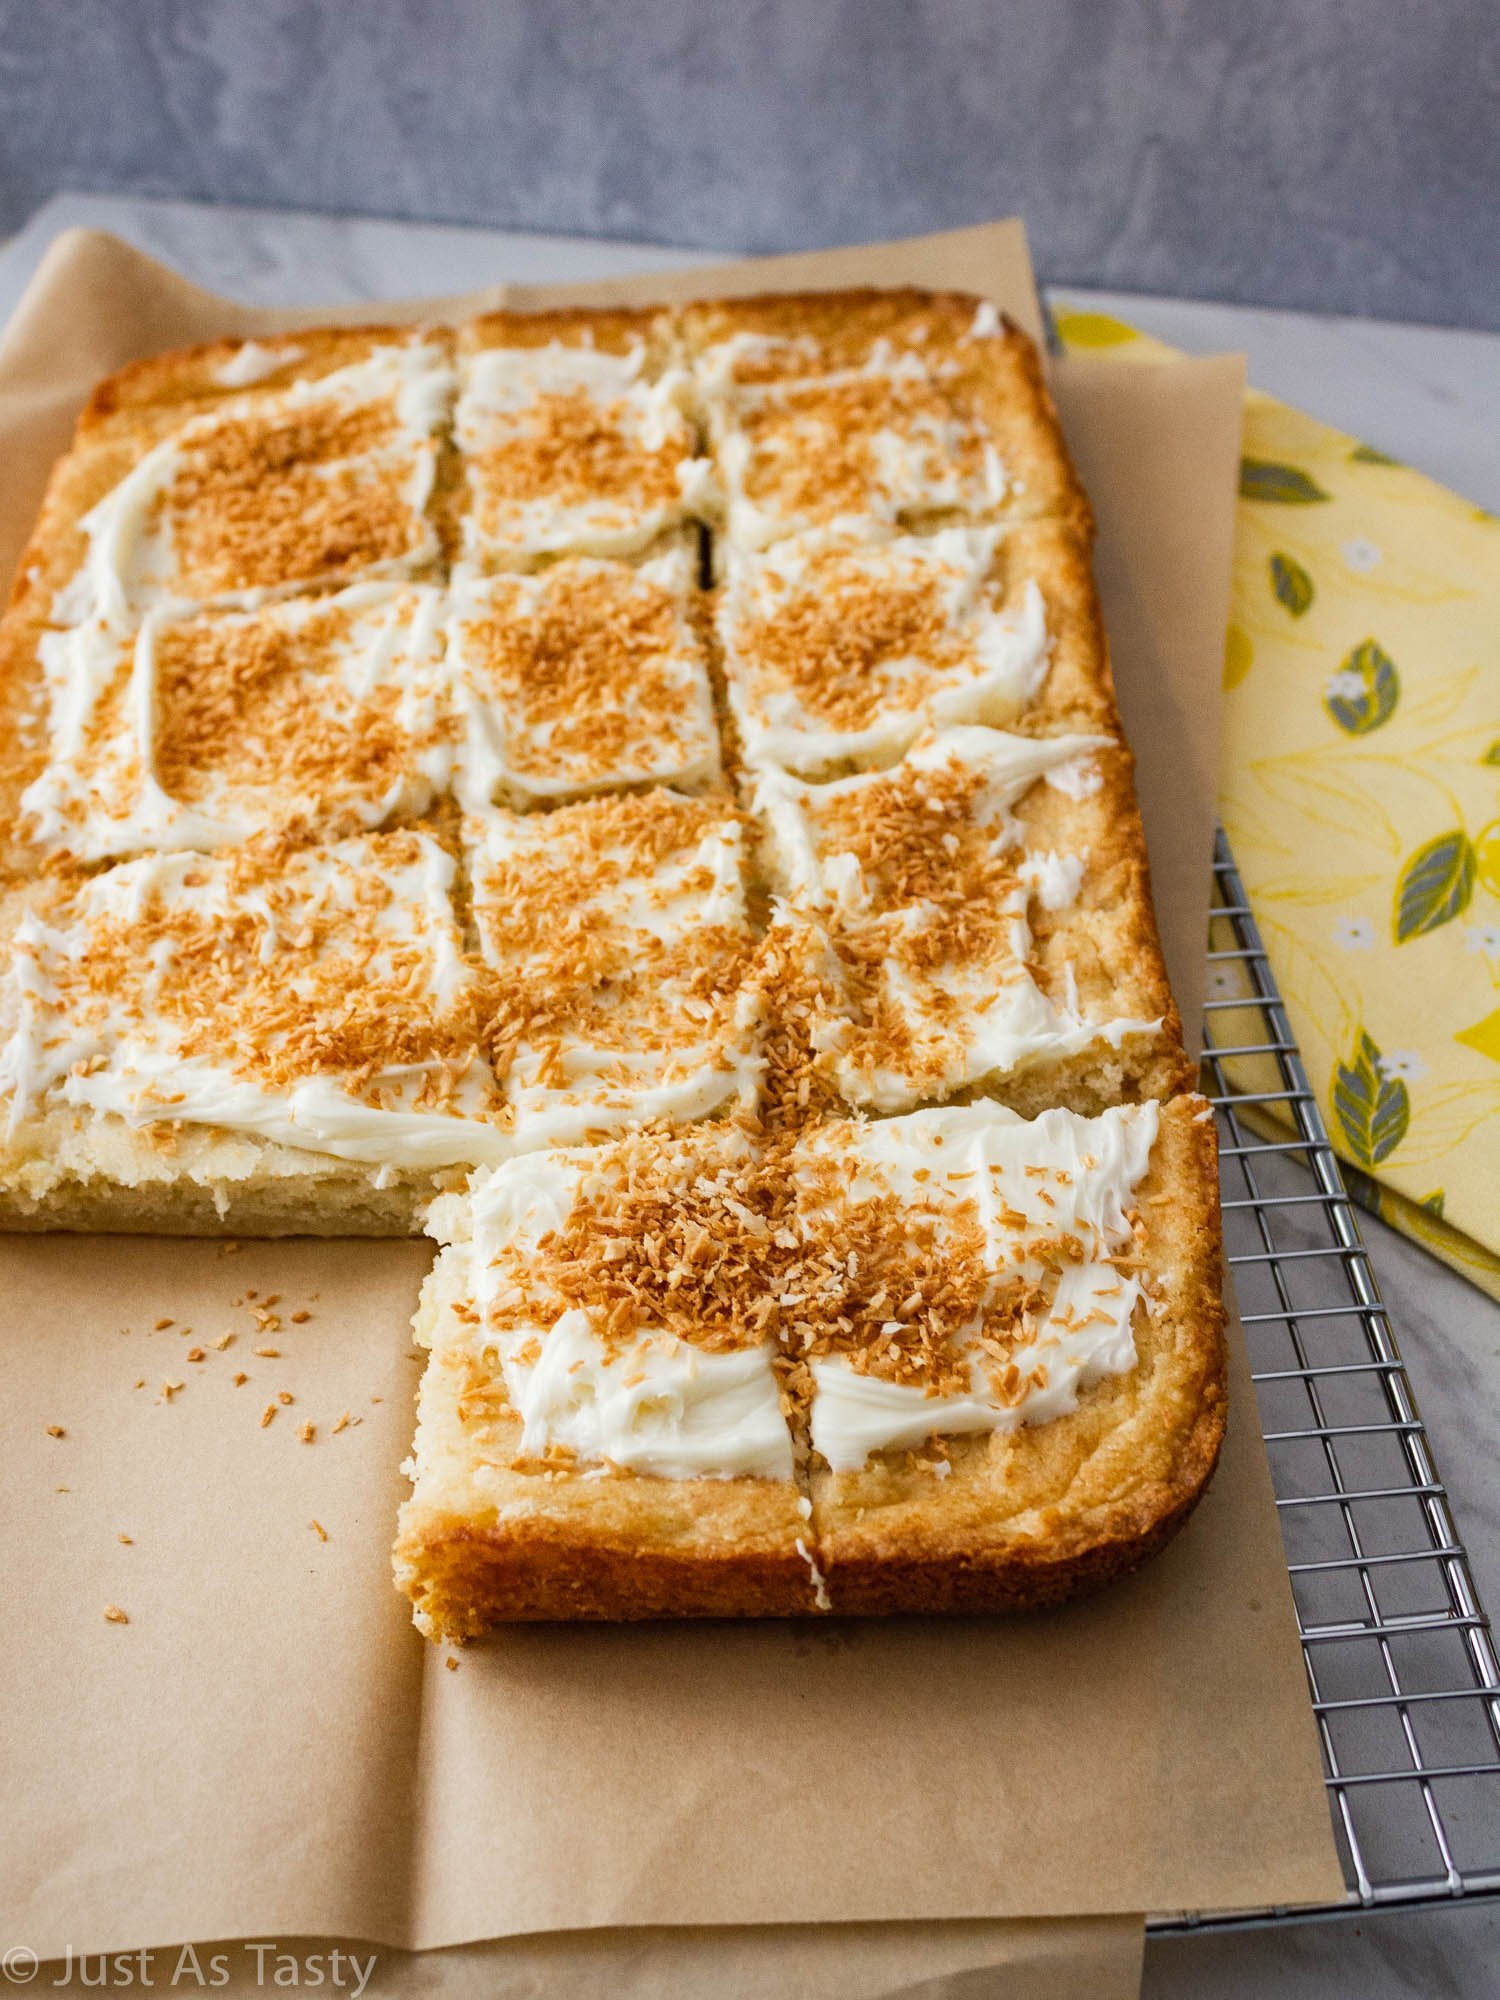 Frosted sheet cake topped with toasted coconut flakes.